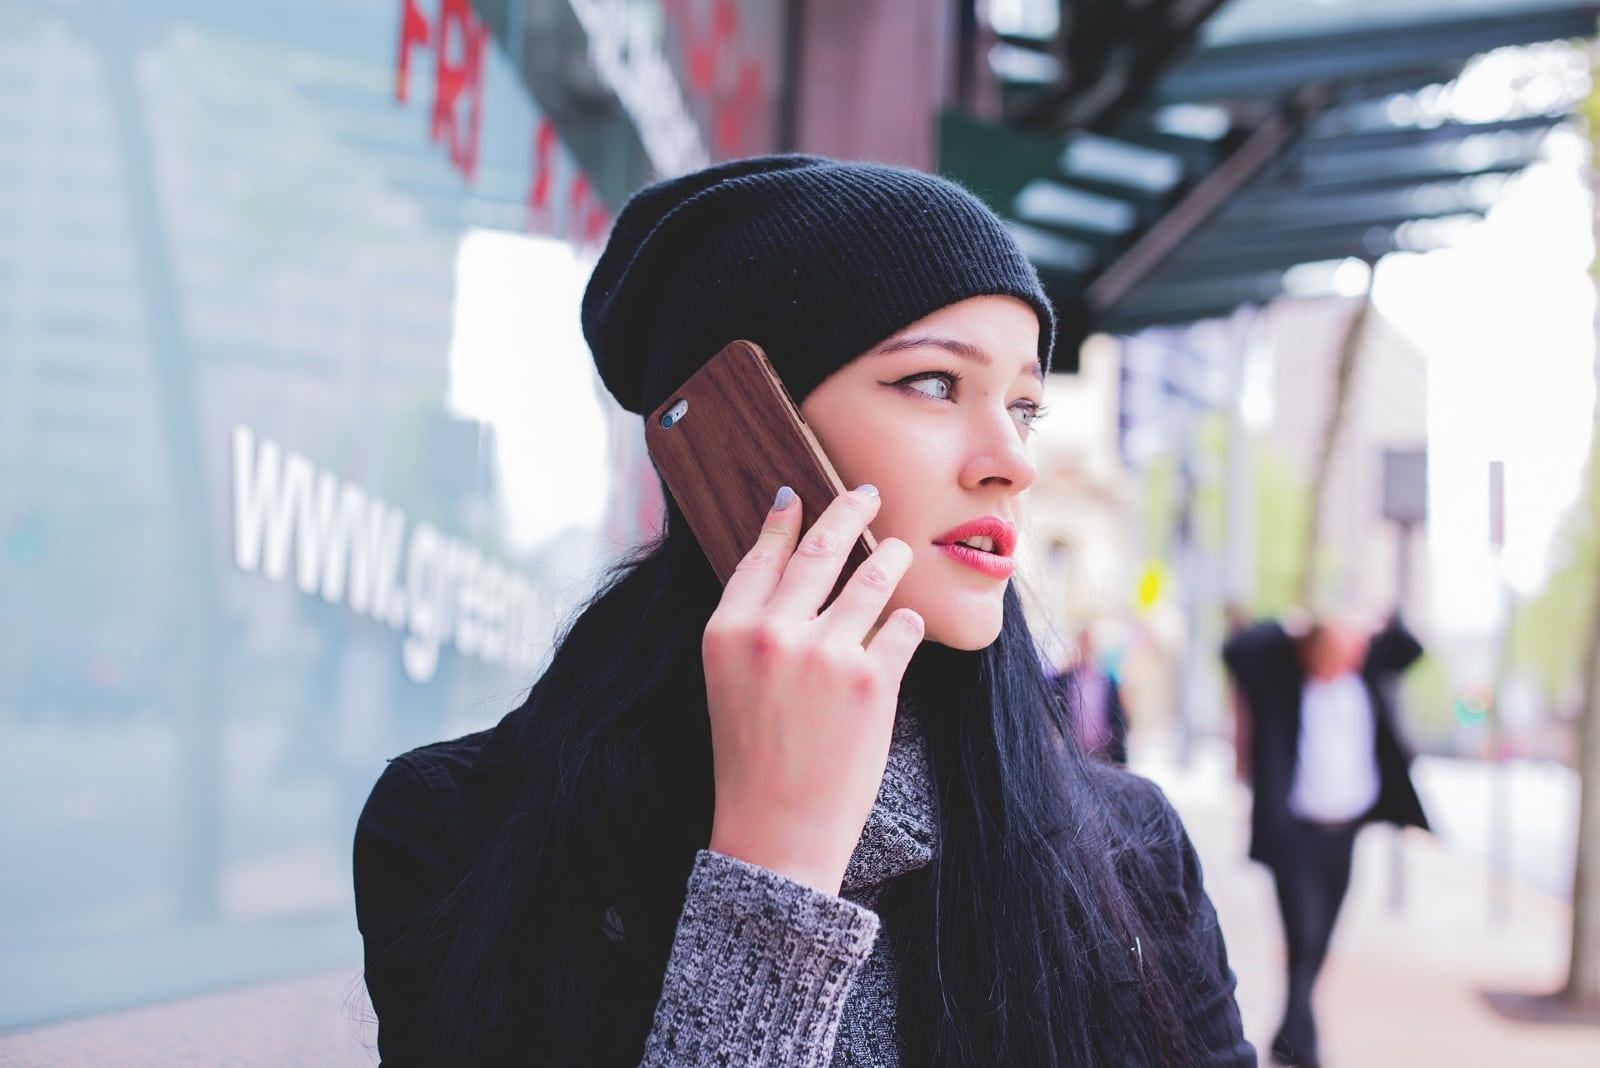 woman with black knit cap talking on the phone outdoor